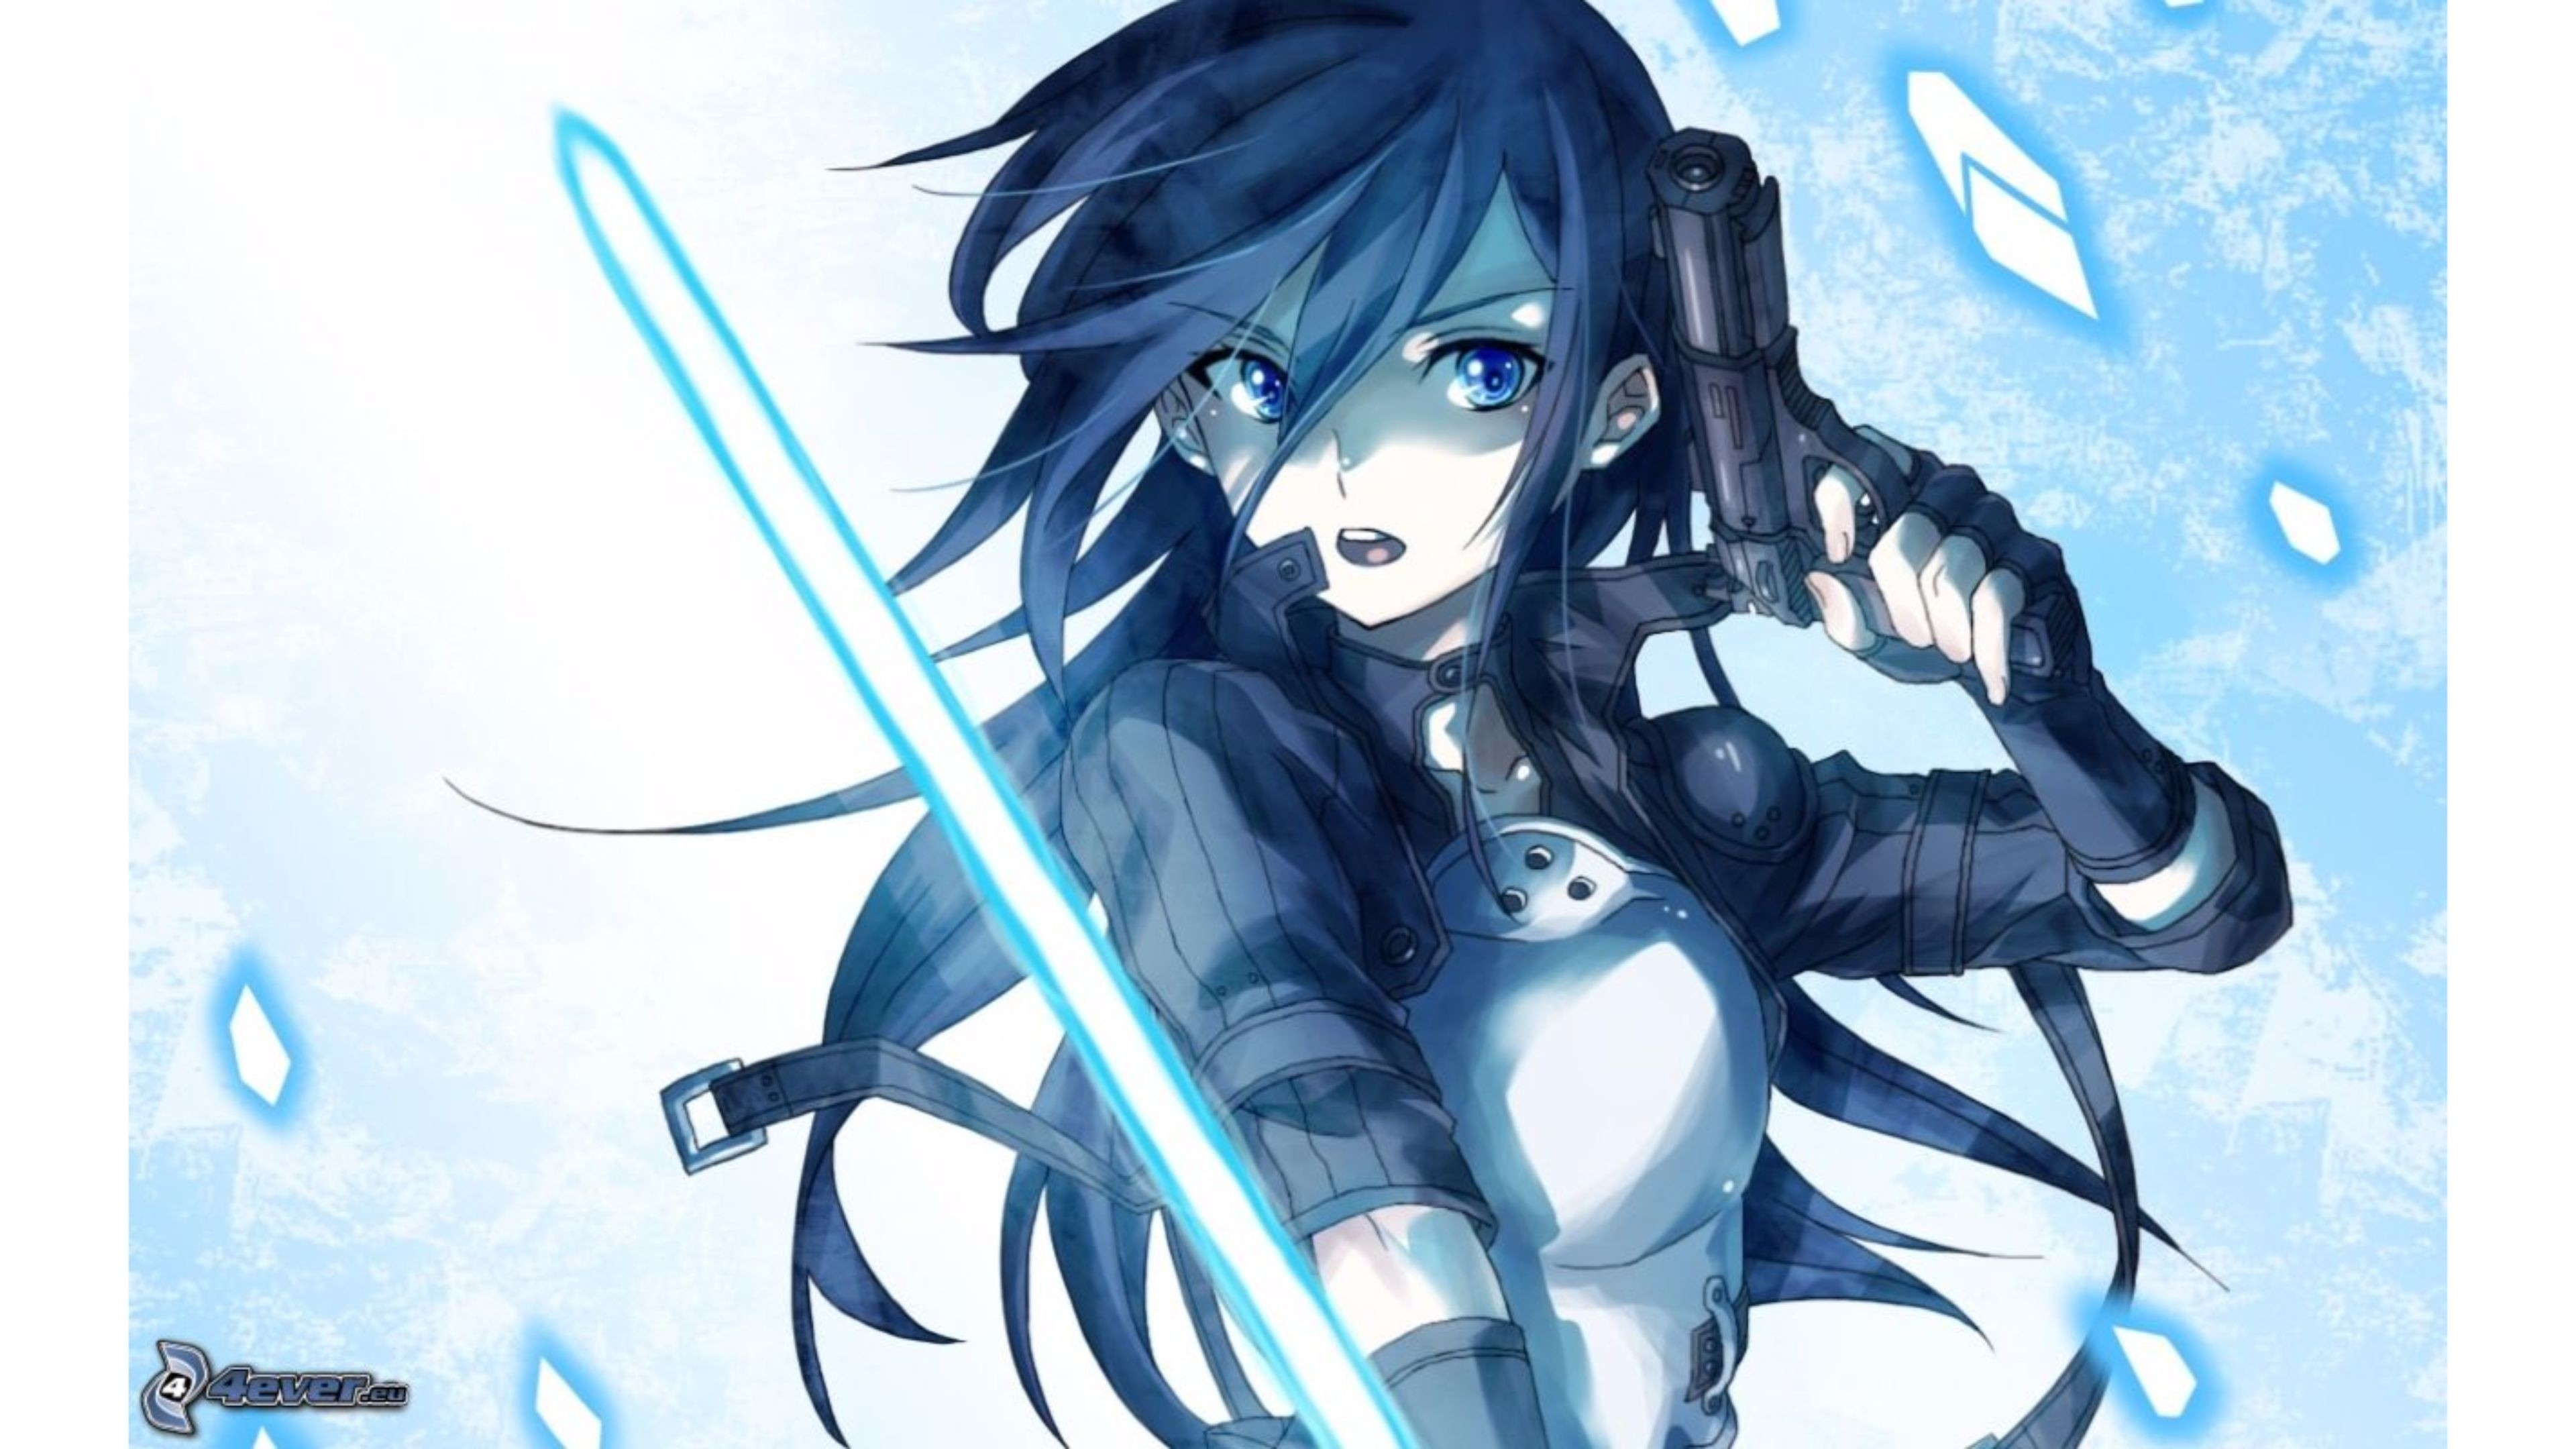 Lightsaber 4k Anime Wallpapers Free 4k Wallpaper Anime Wallpaper 4k Animated 3840x2160 Download Hd Wallpaper Wallpapertip